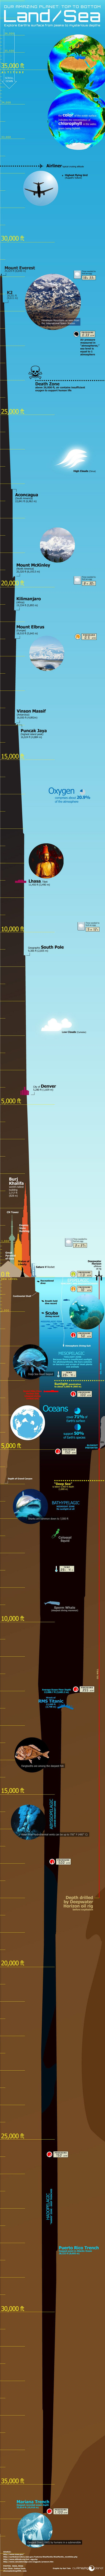 Awesome infographic that shows the height (and depth) of key points on our earth. Pretty cool.